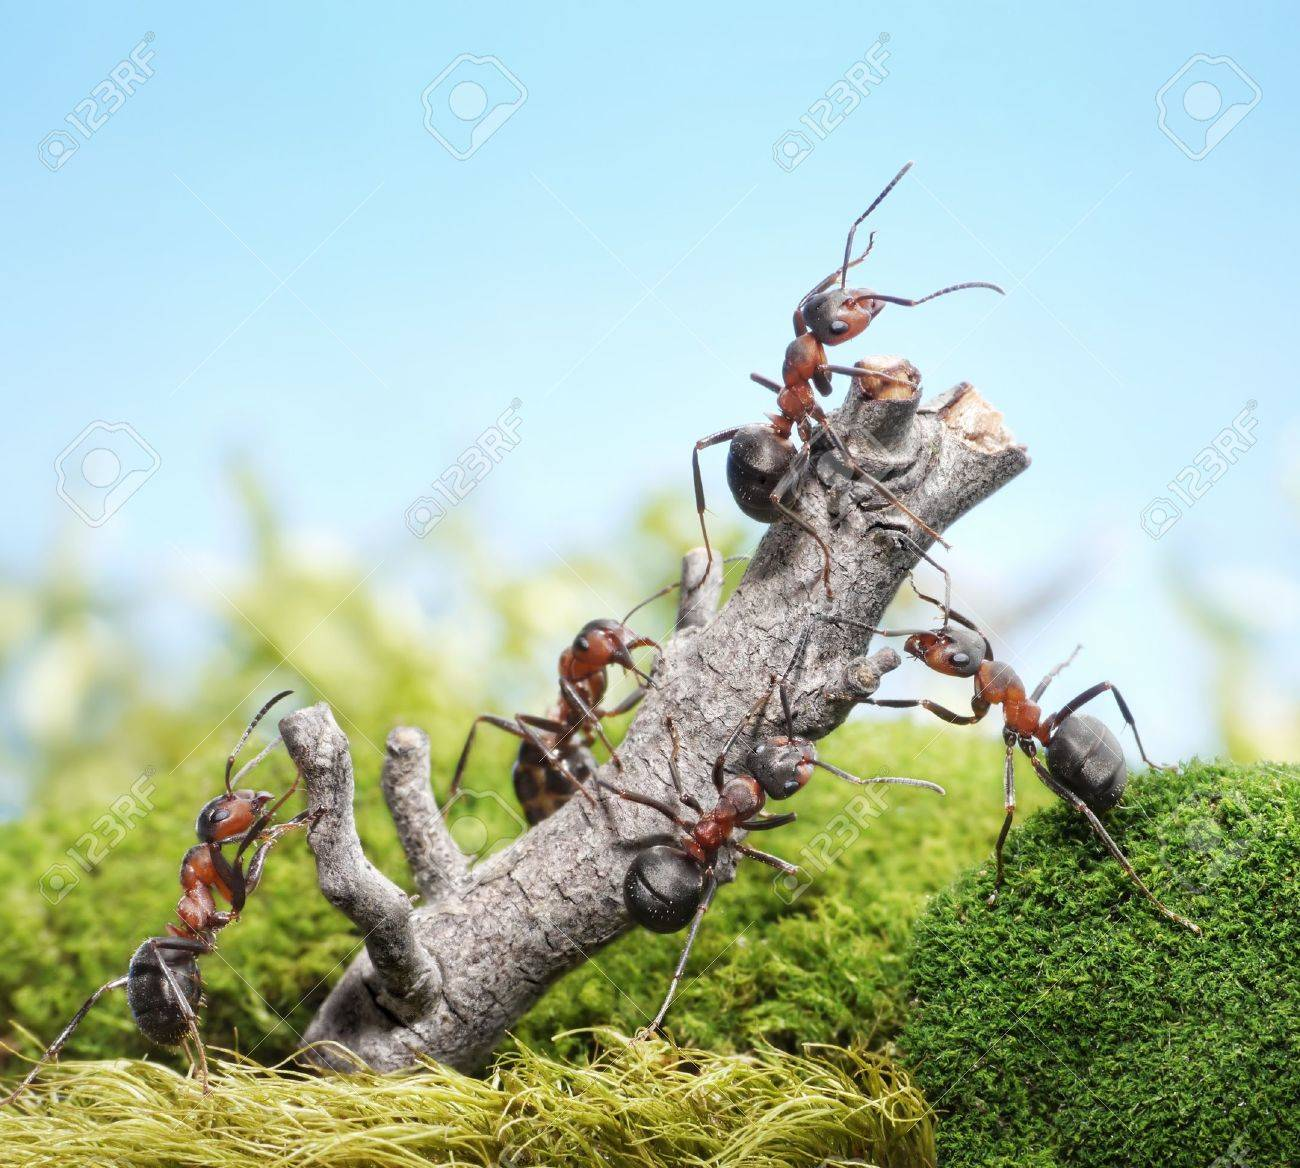 team of ants breaking down weathered tree, teamwork concept Stock Photo - 11111890